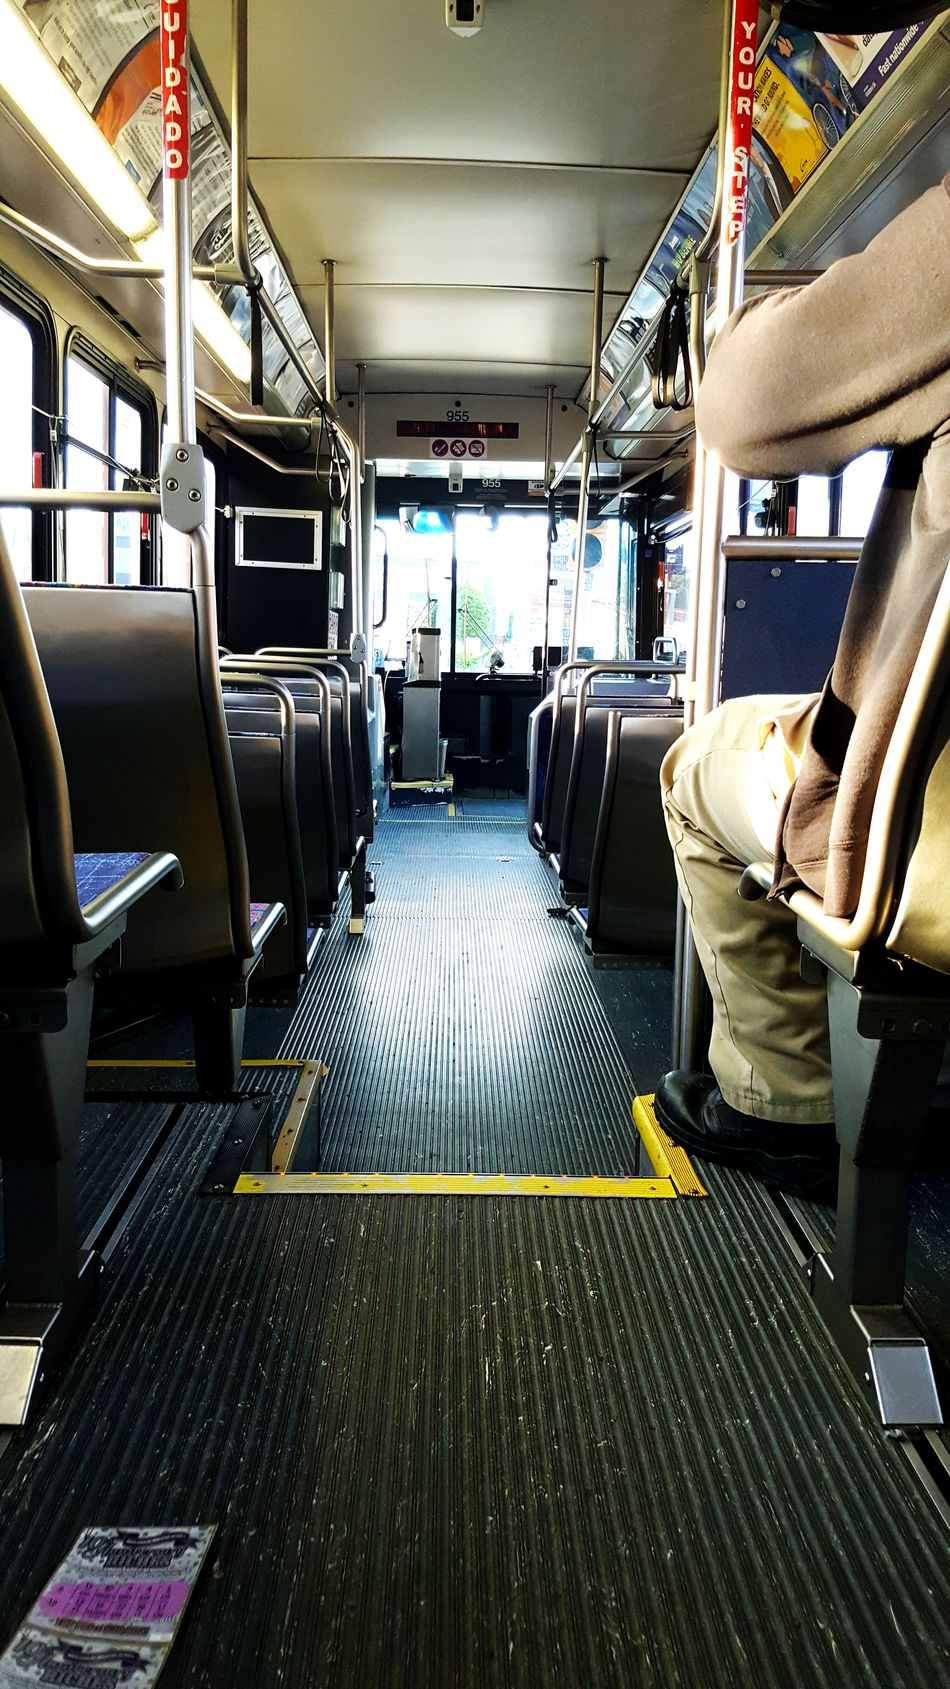 S6edgephotography Afternoon Vibe Streetphotography Samsung Galaxy S6 Edge Inthebus Bus Bus Ride Busride My Commute-2016 EyeEm Photography Awards My Commute The Portraitist - 2016 EyeEm Awards The Portraitist - The 2016 EyeEm Awards Taking Photos From My Point Of View People And Places